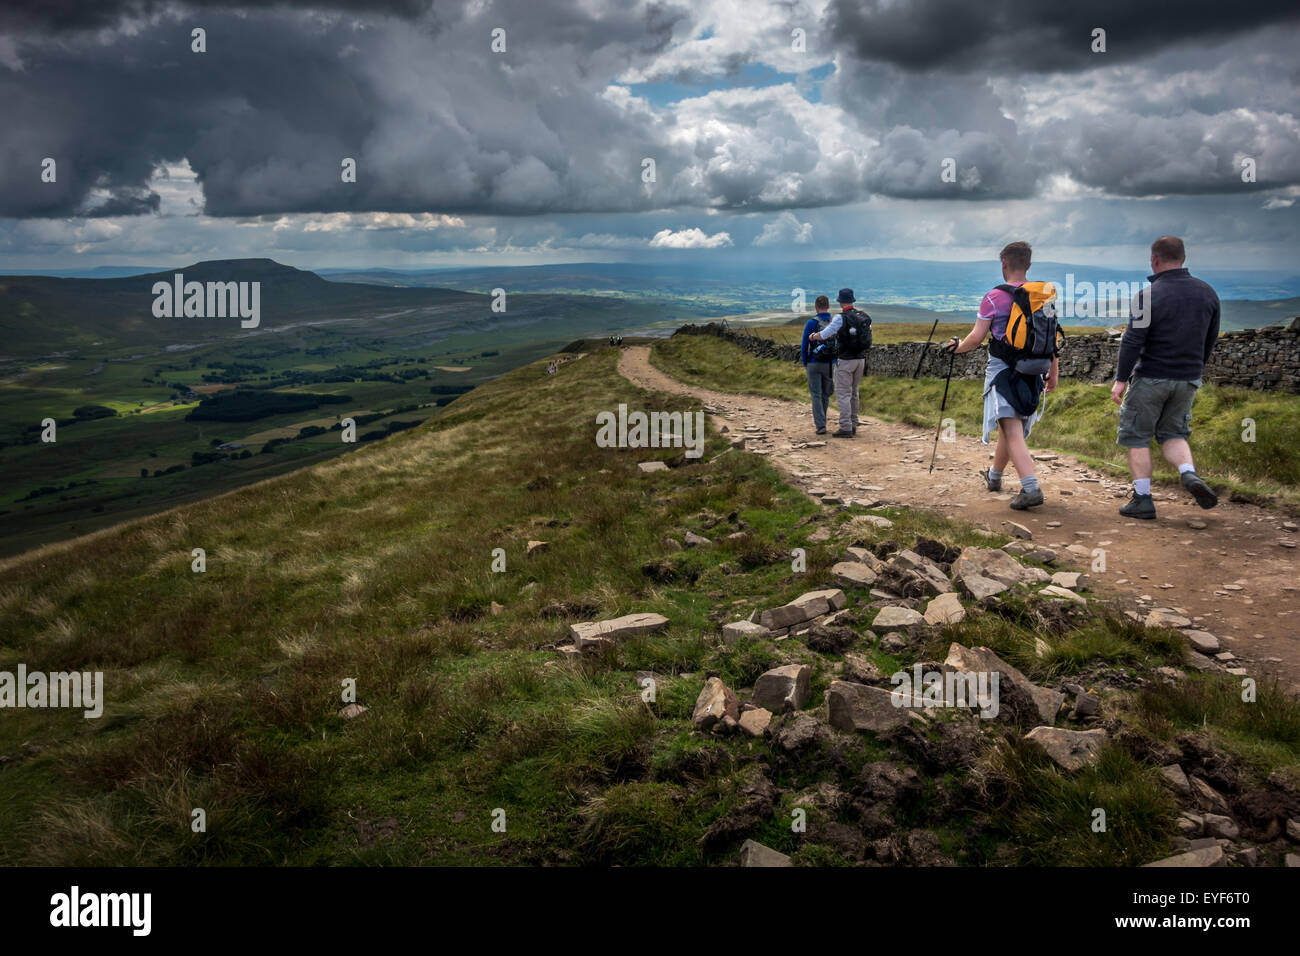 Descending off Whernside in the Yorkshire Dales countryside with Pen-y-ghent in the background - Stock Image